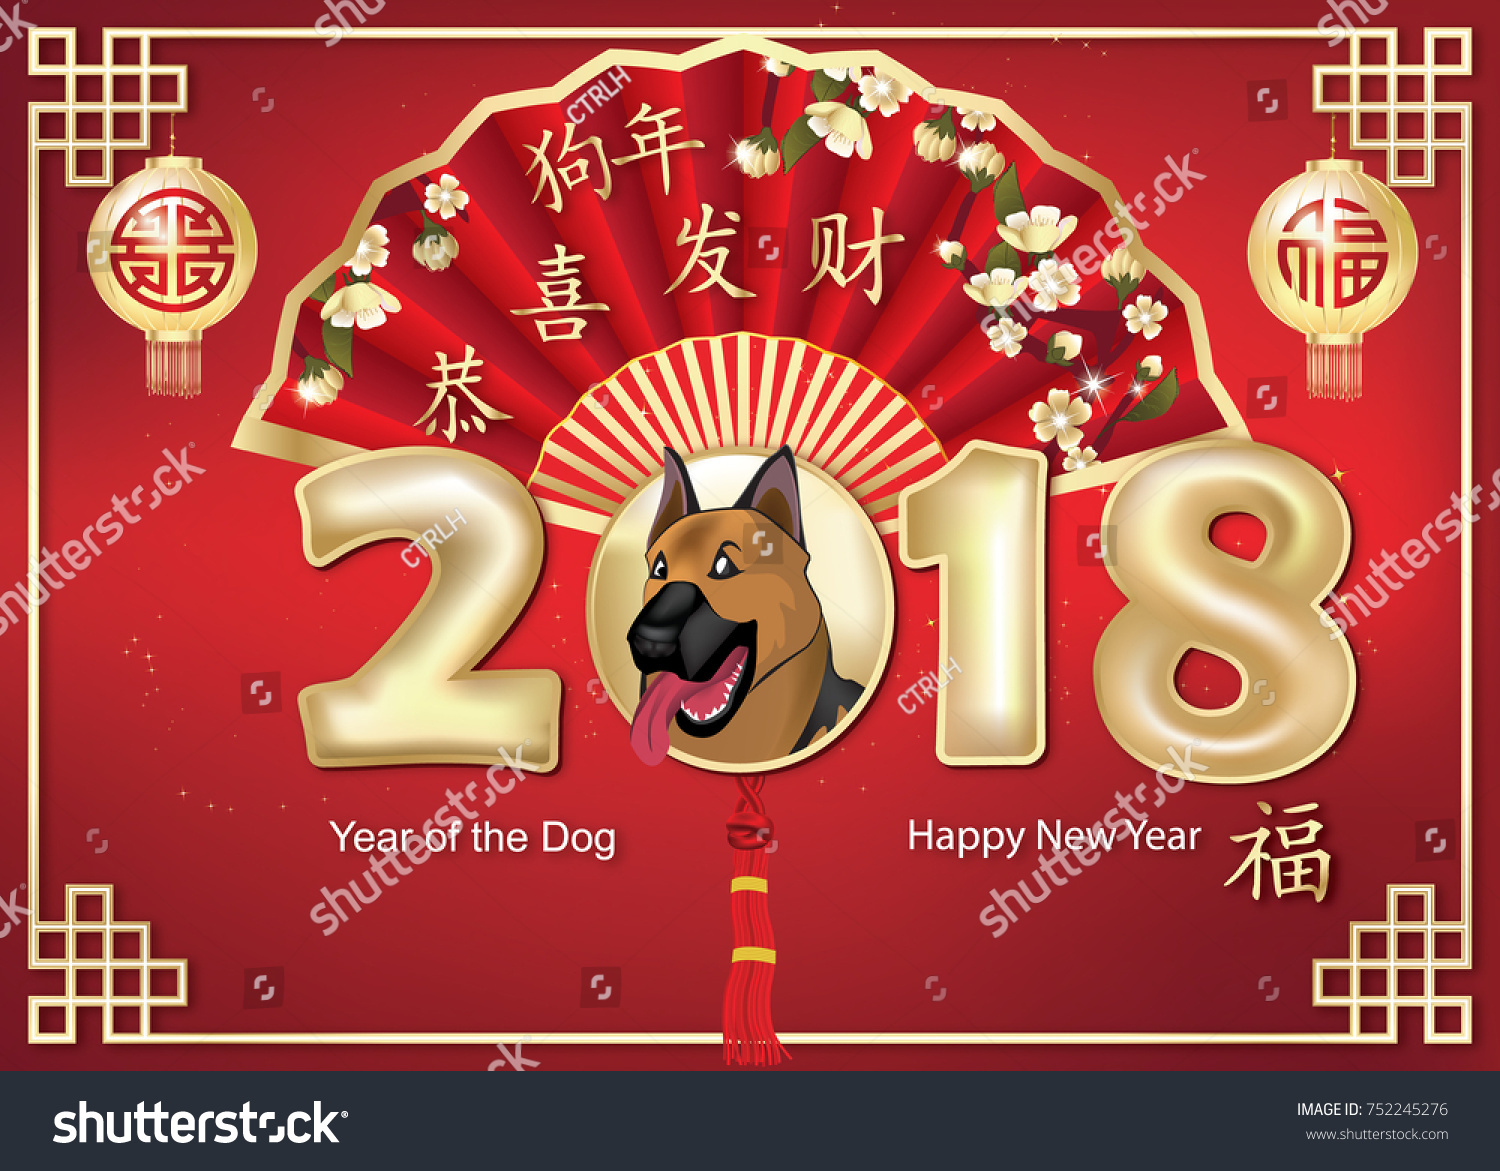 Happy Chinese New Year 2018 Greeting Stock Illustration 752245276